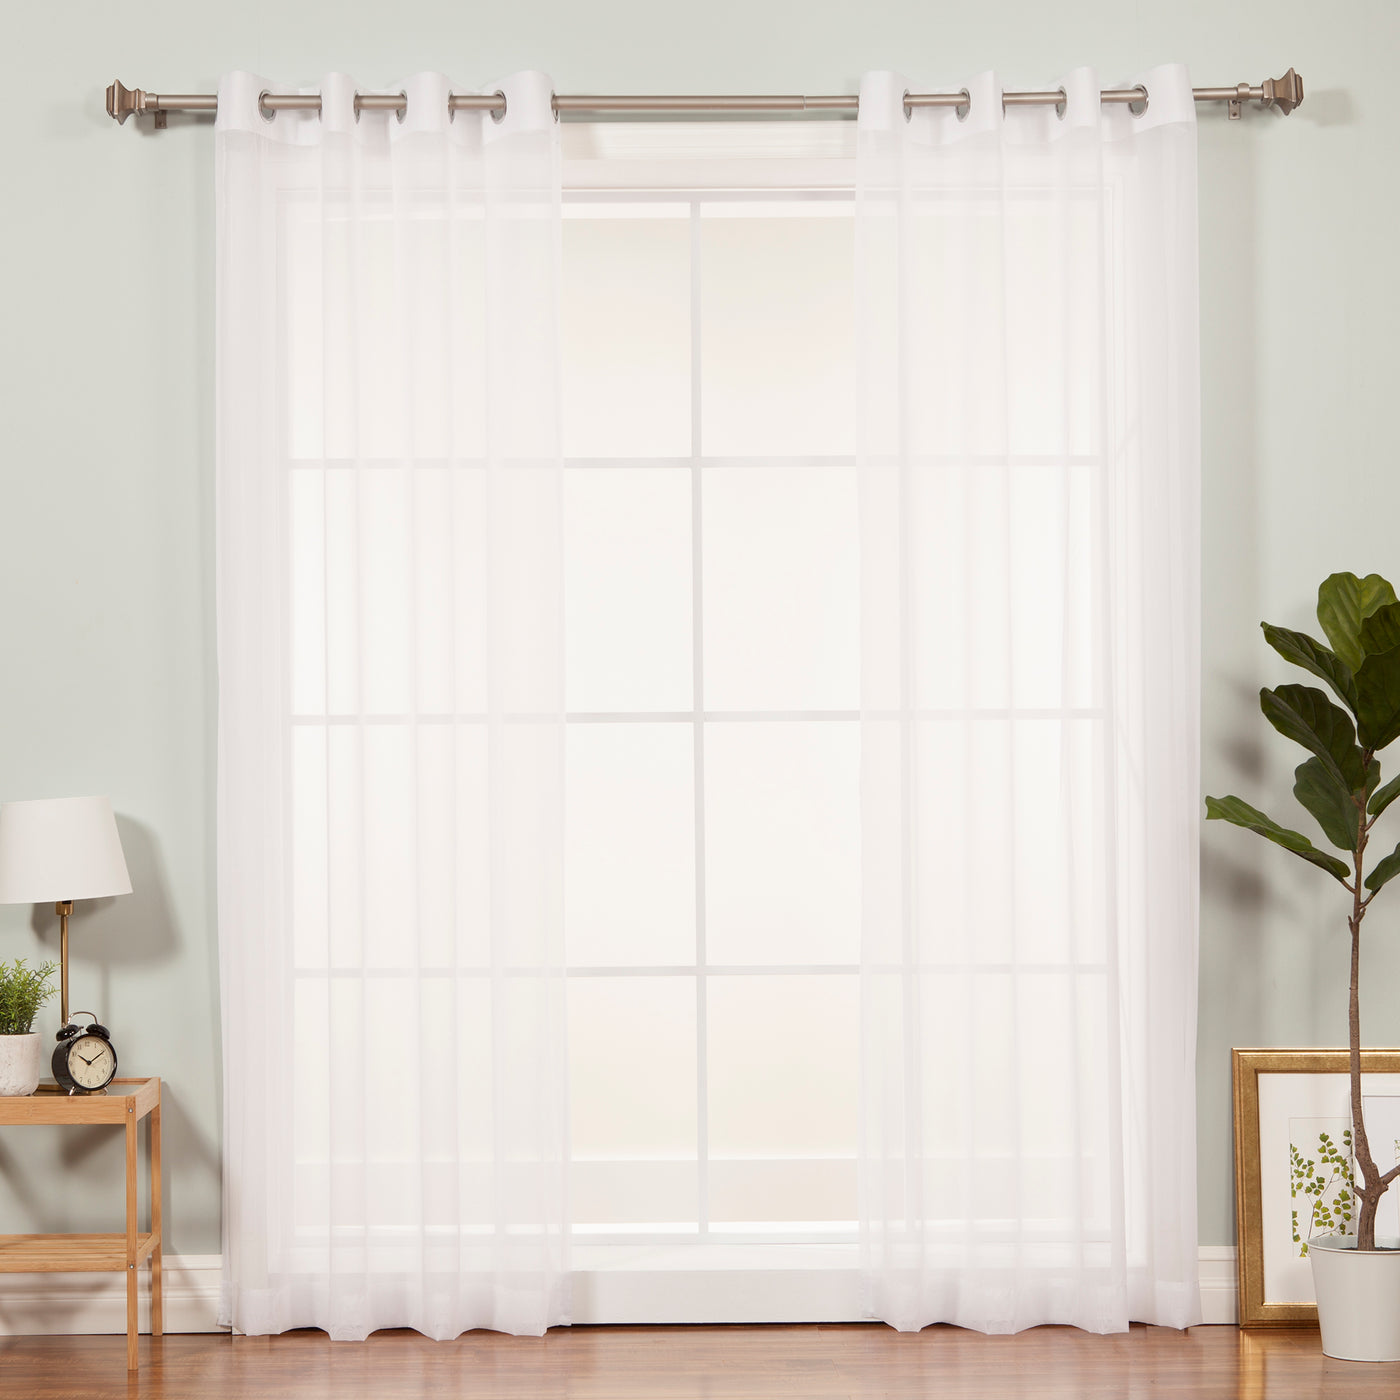 Sheer Voile Silver Grommet Curtains